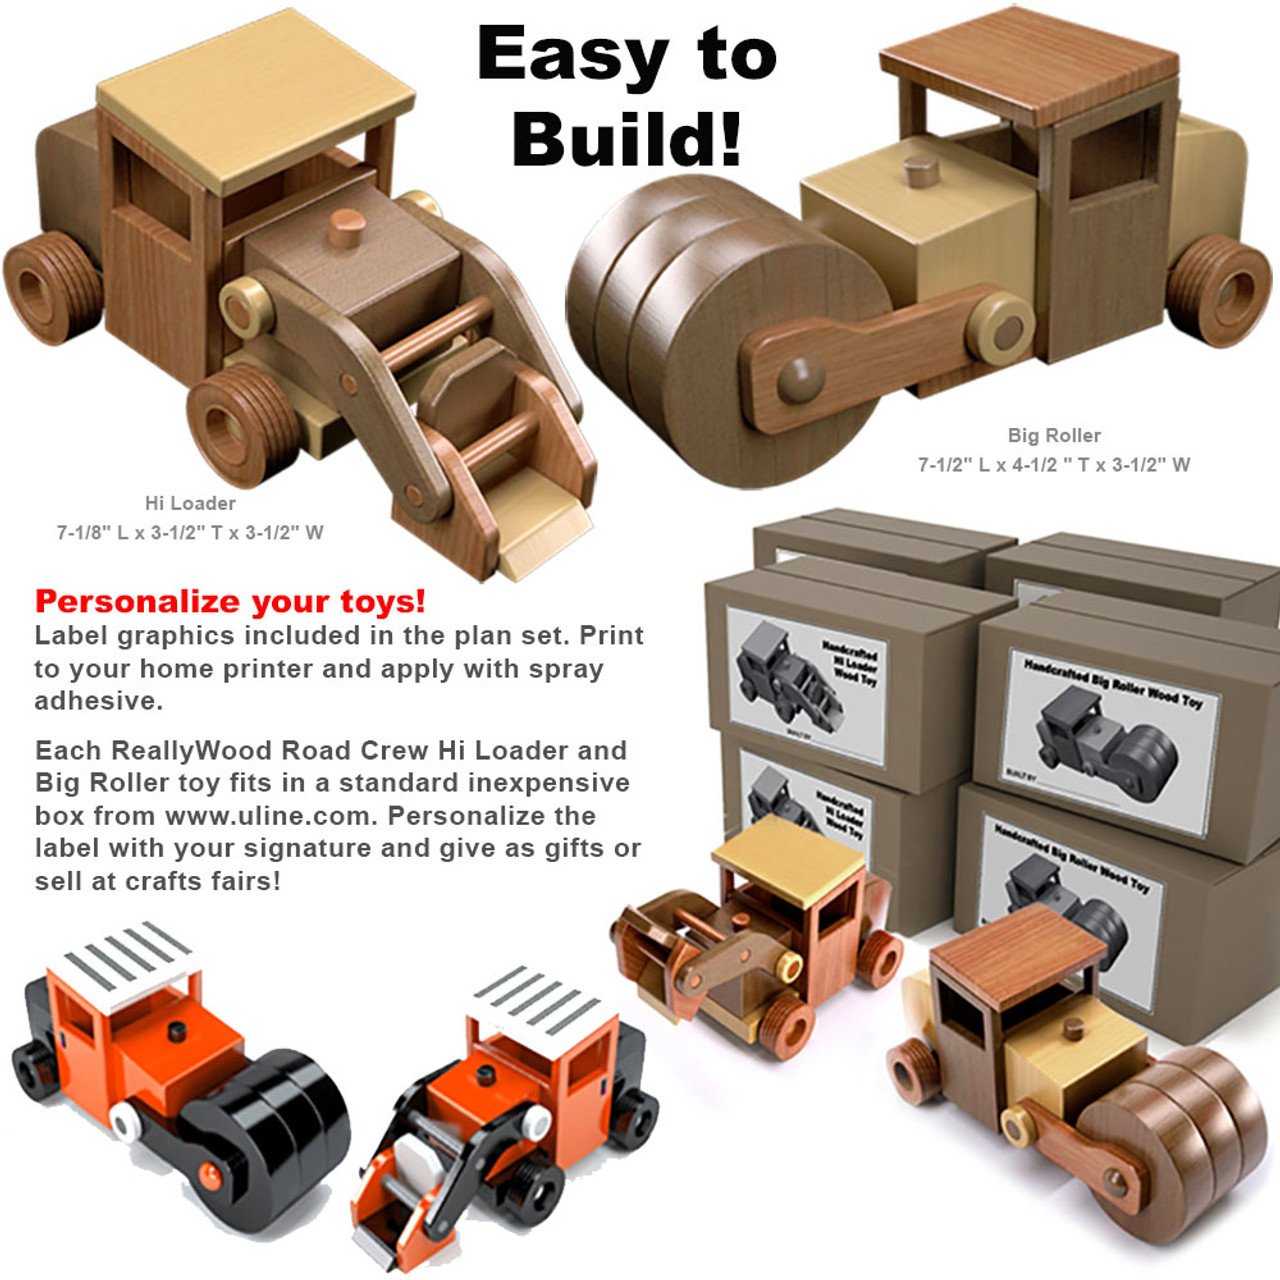 reallywood road crew hi loader & big roller wood toy plans (pdf download)